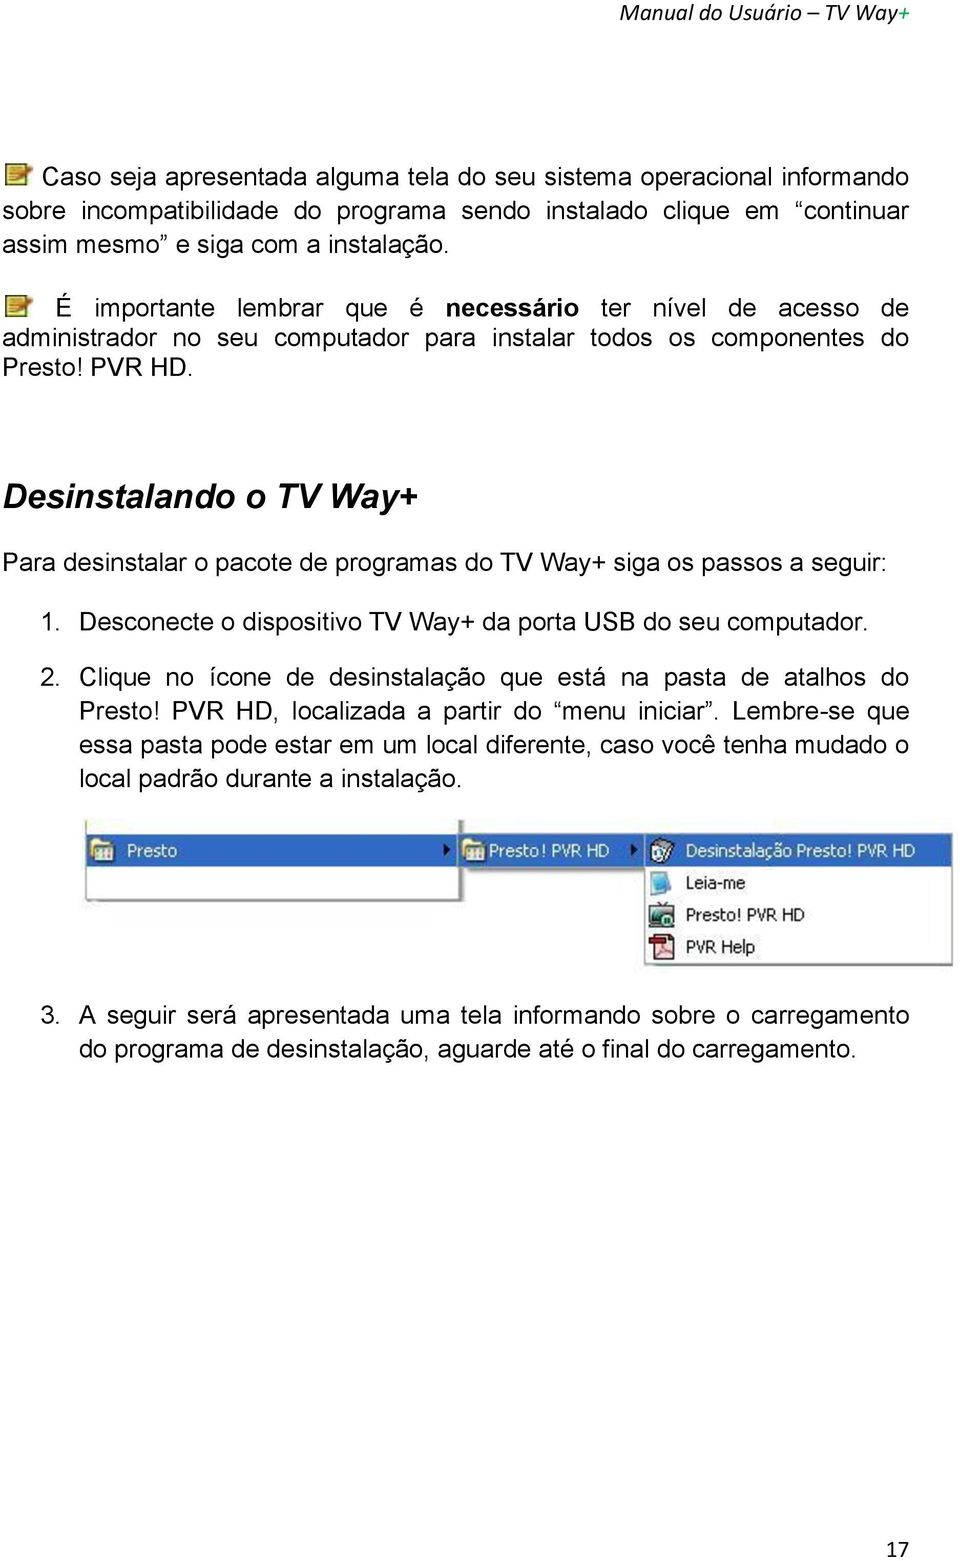 Desinstalando o TV Way+ Para desinstalar o pacote de programas do TV Way+ siga os passos a seguir: 1. Desconecte o dispositivo TV Way+ da porta USB do seu computador. 2.